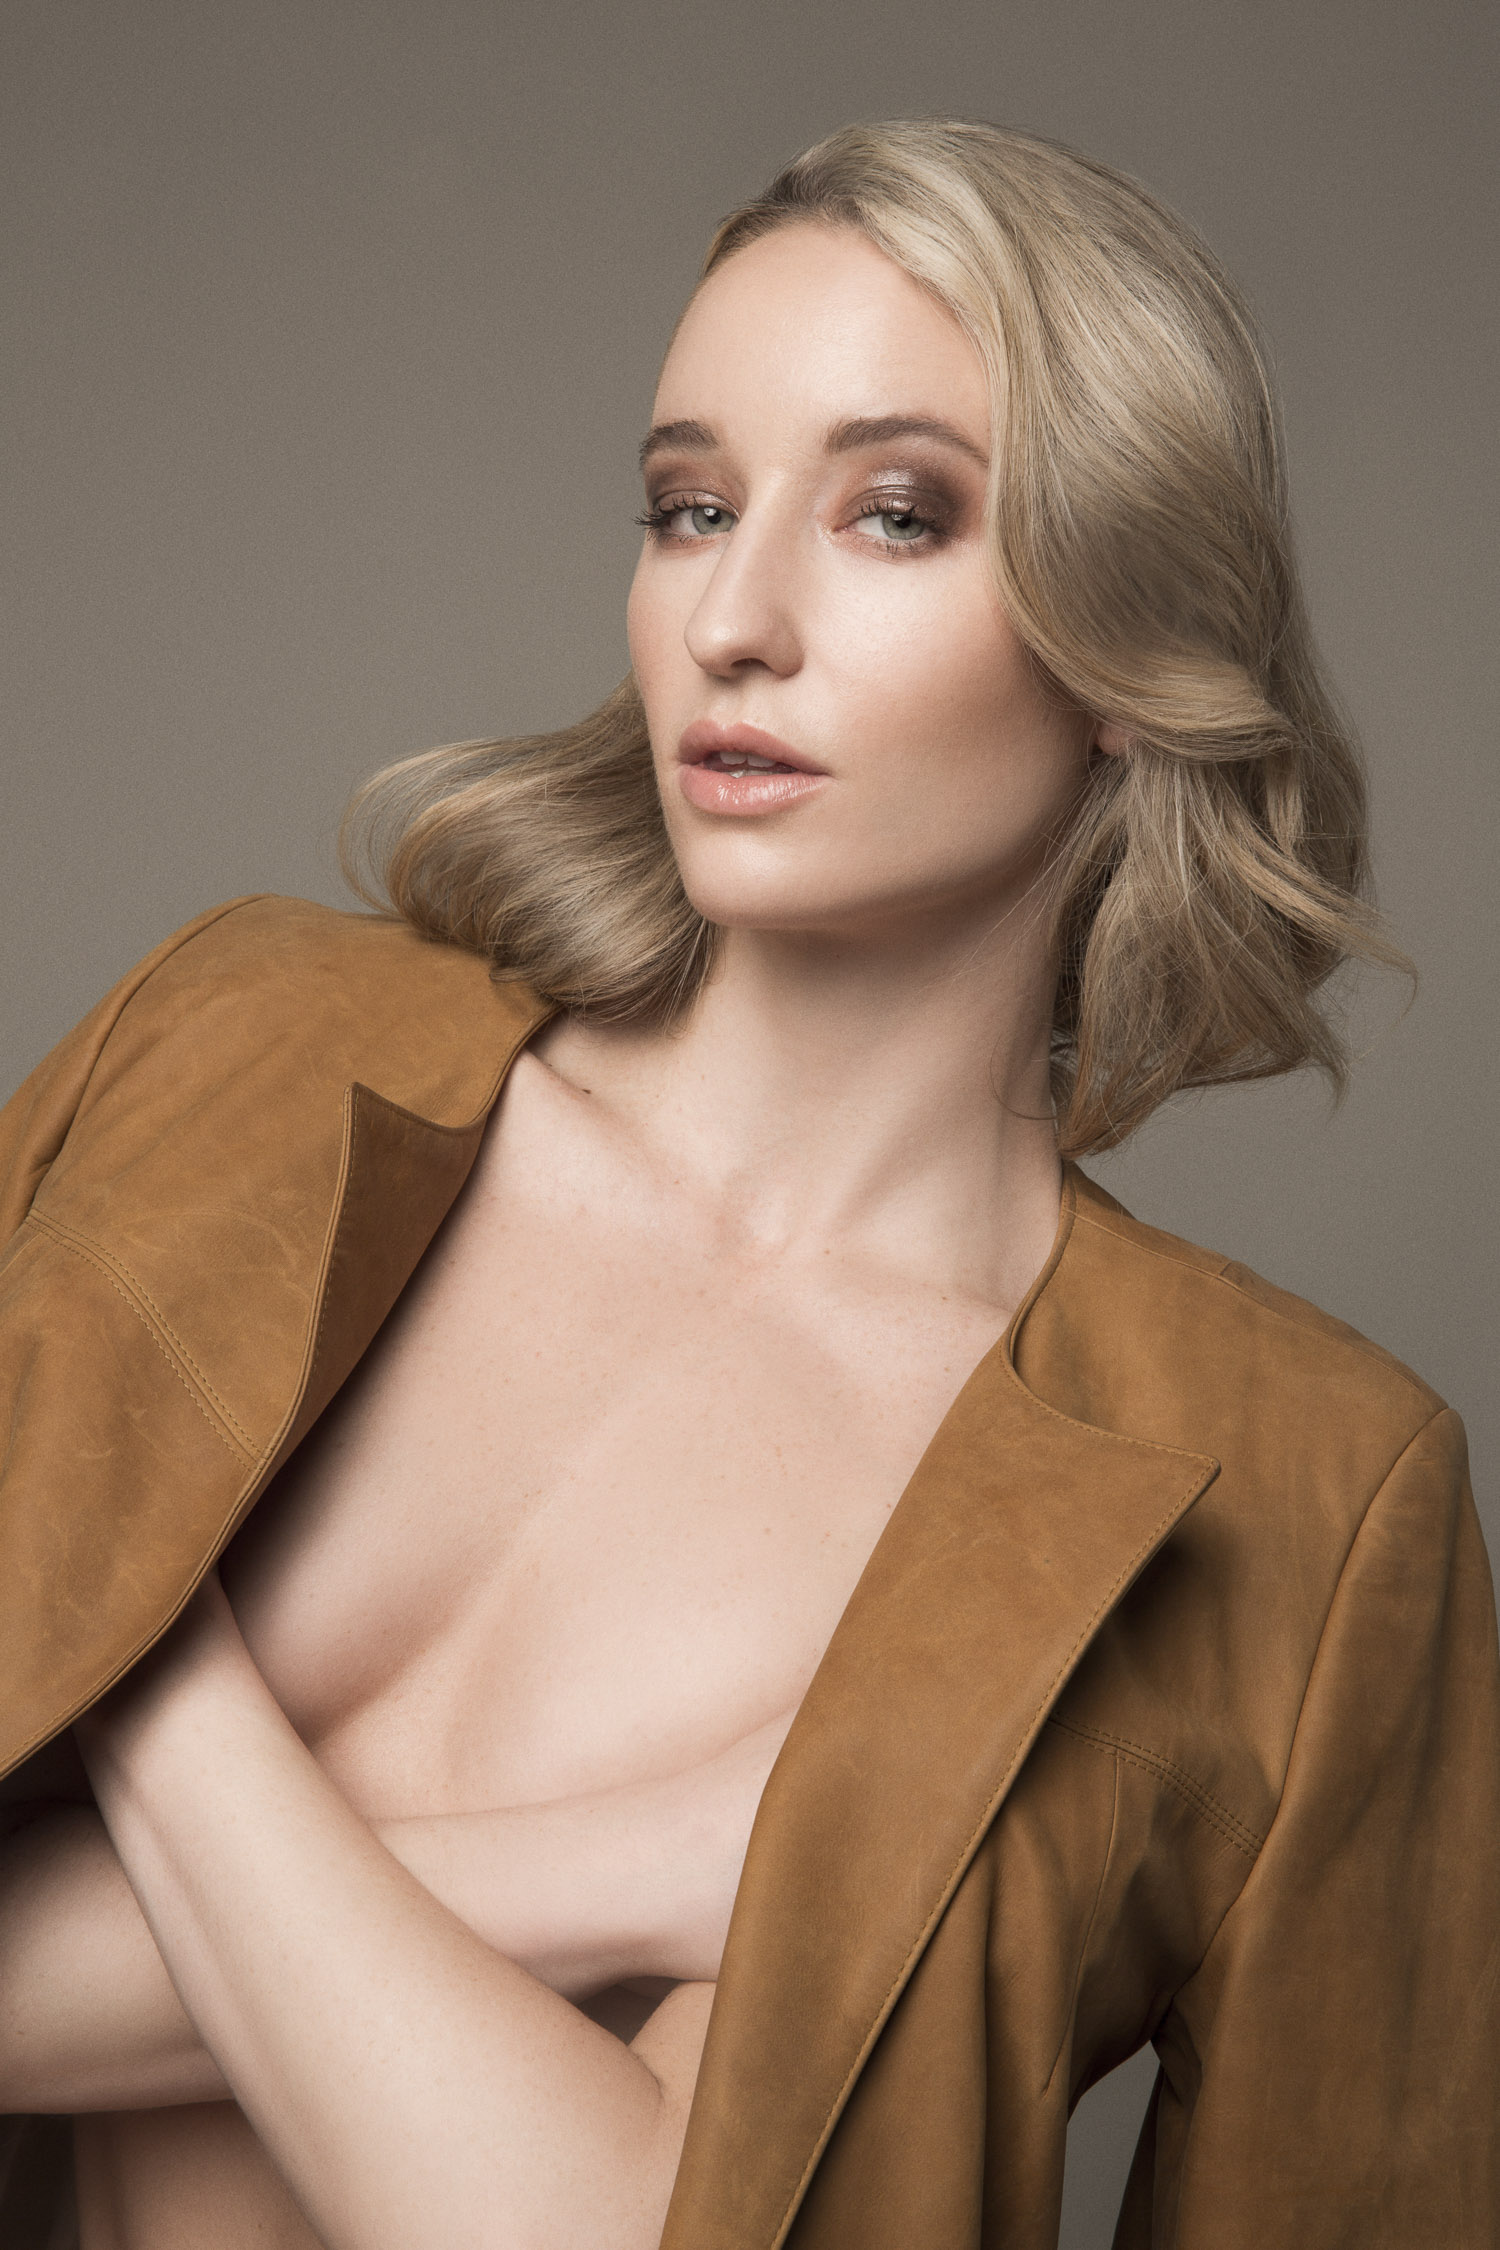 Blonde model in a luxury leather trenchcoat